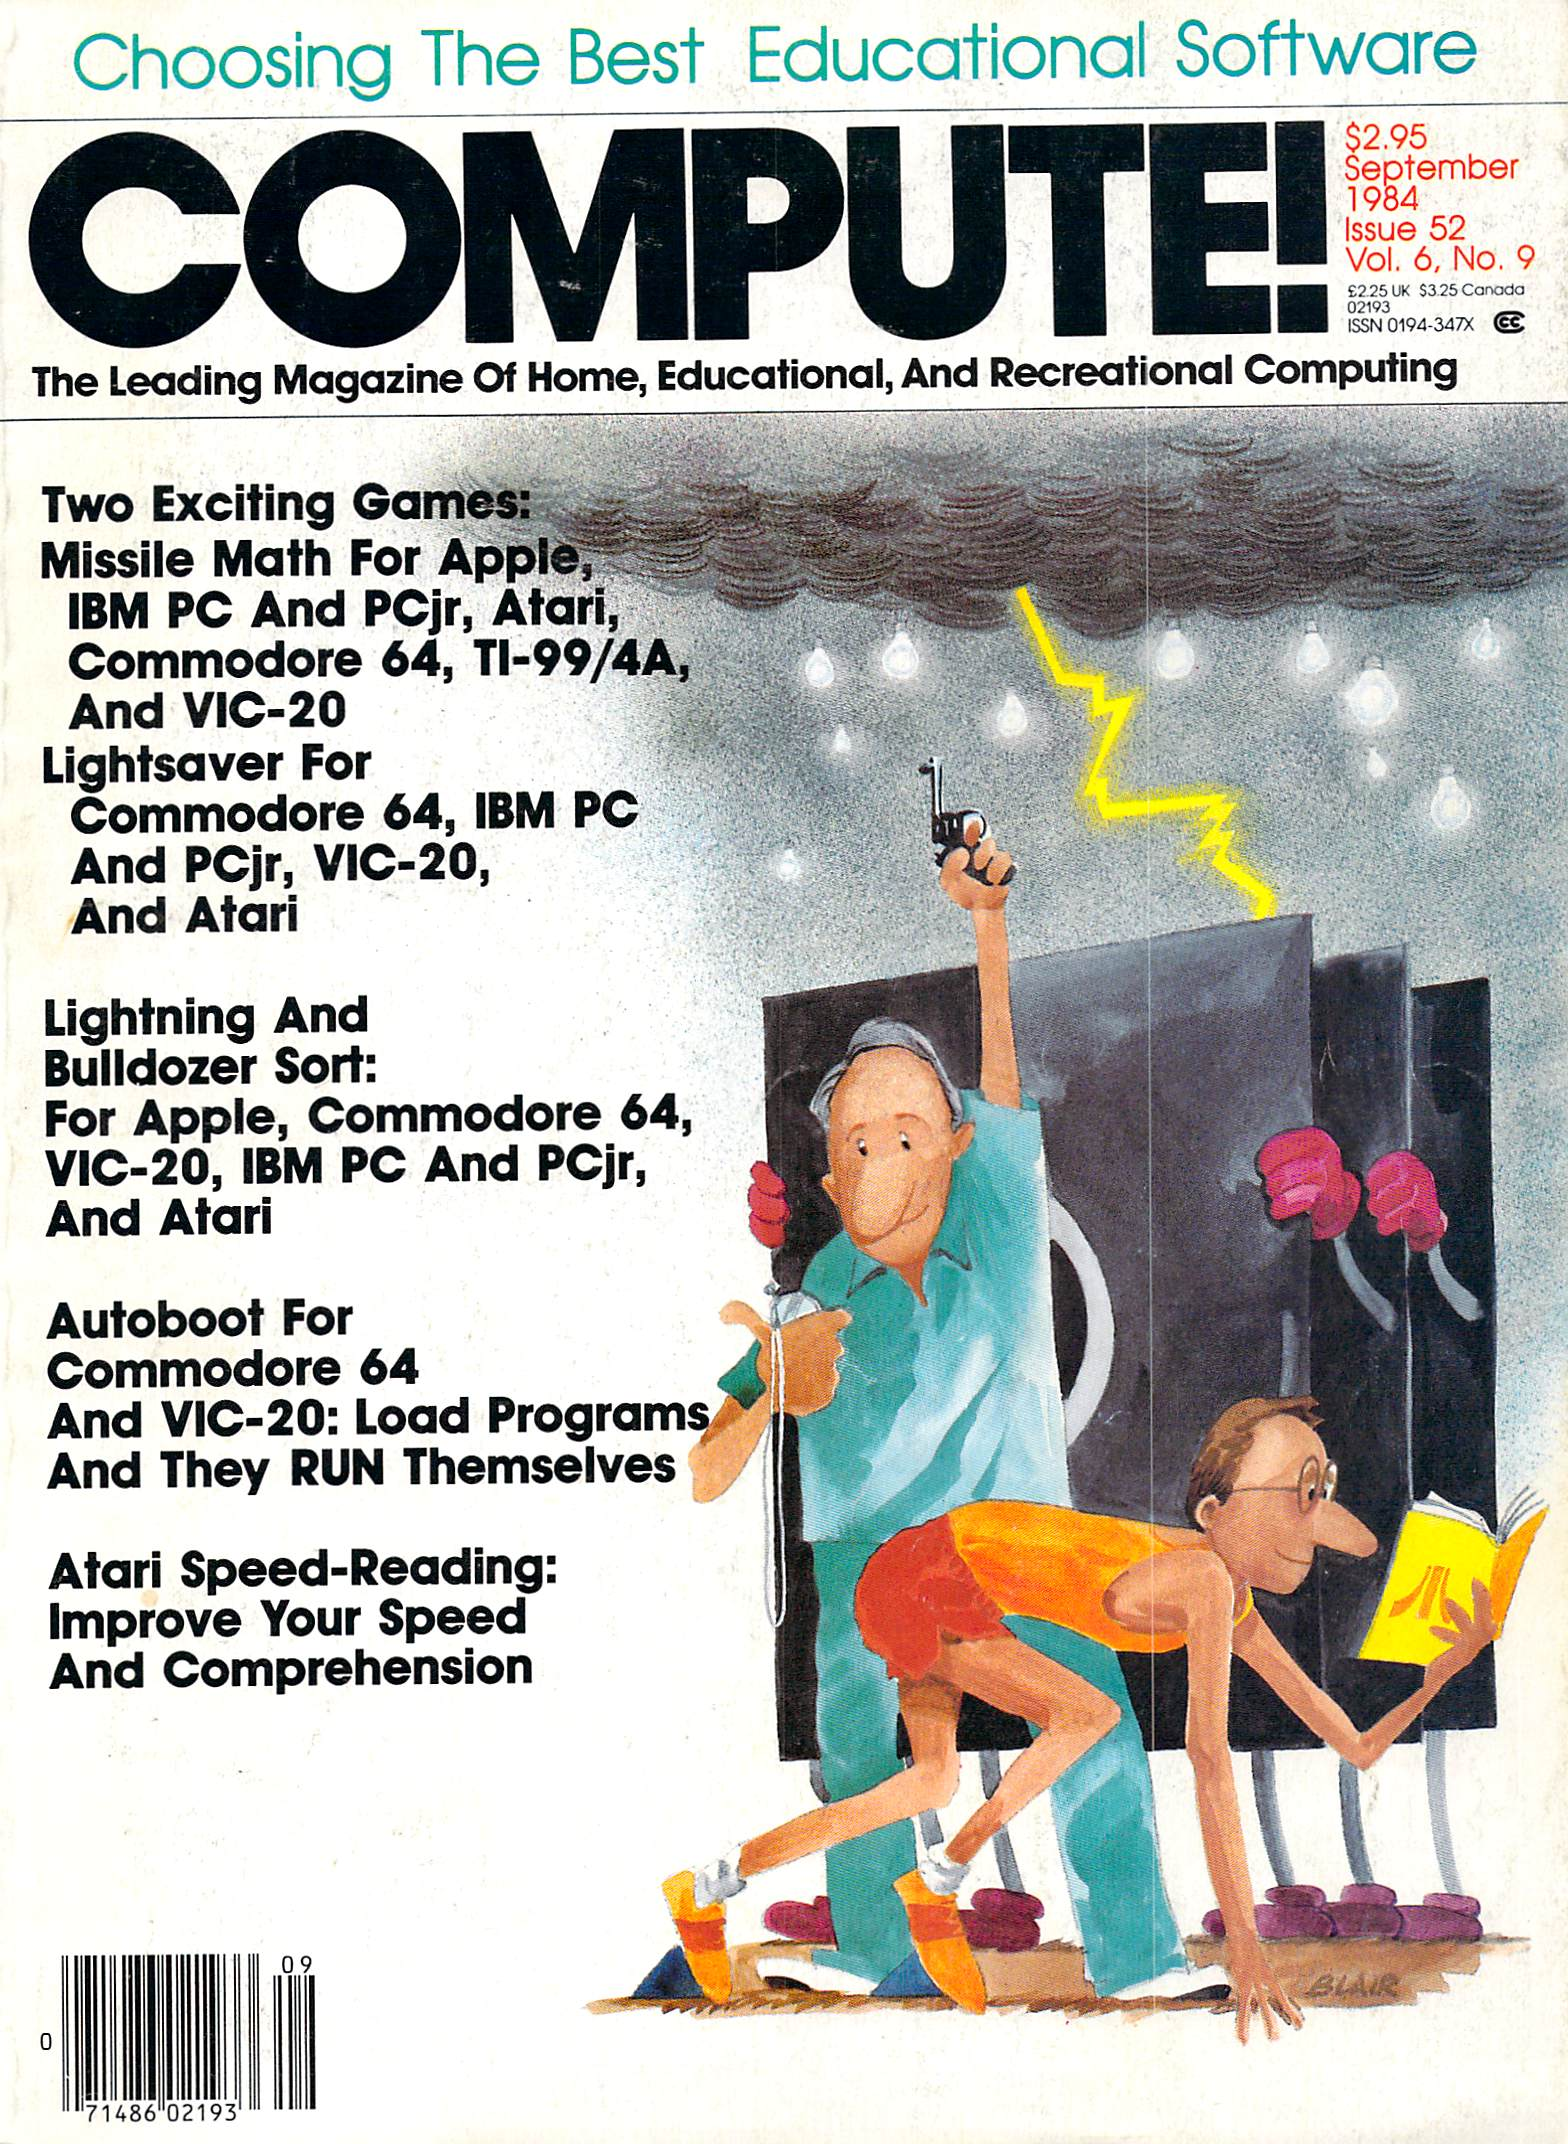 compute_issue_052_1984_sep-001